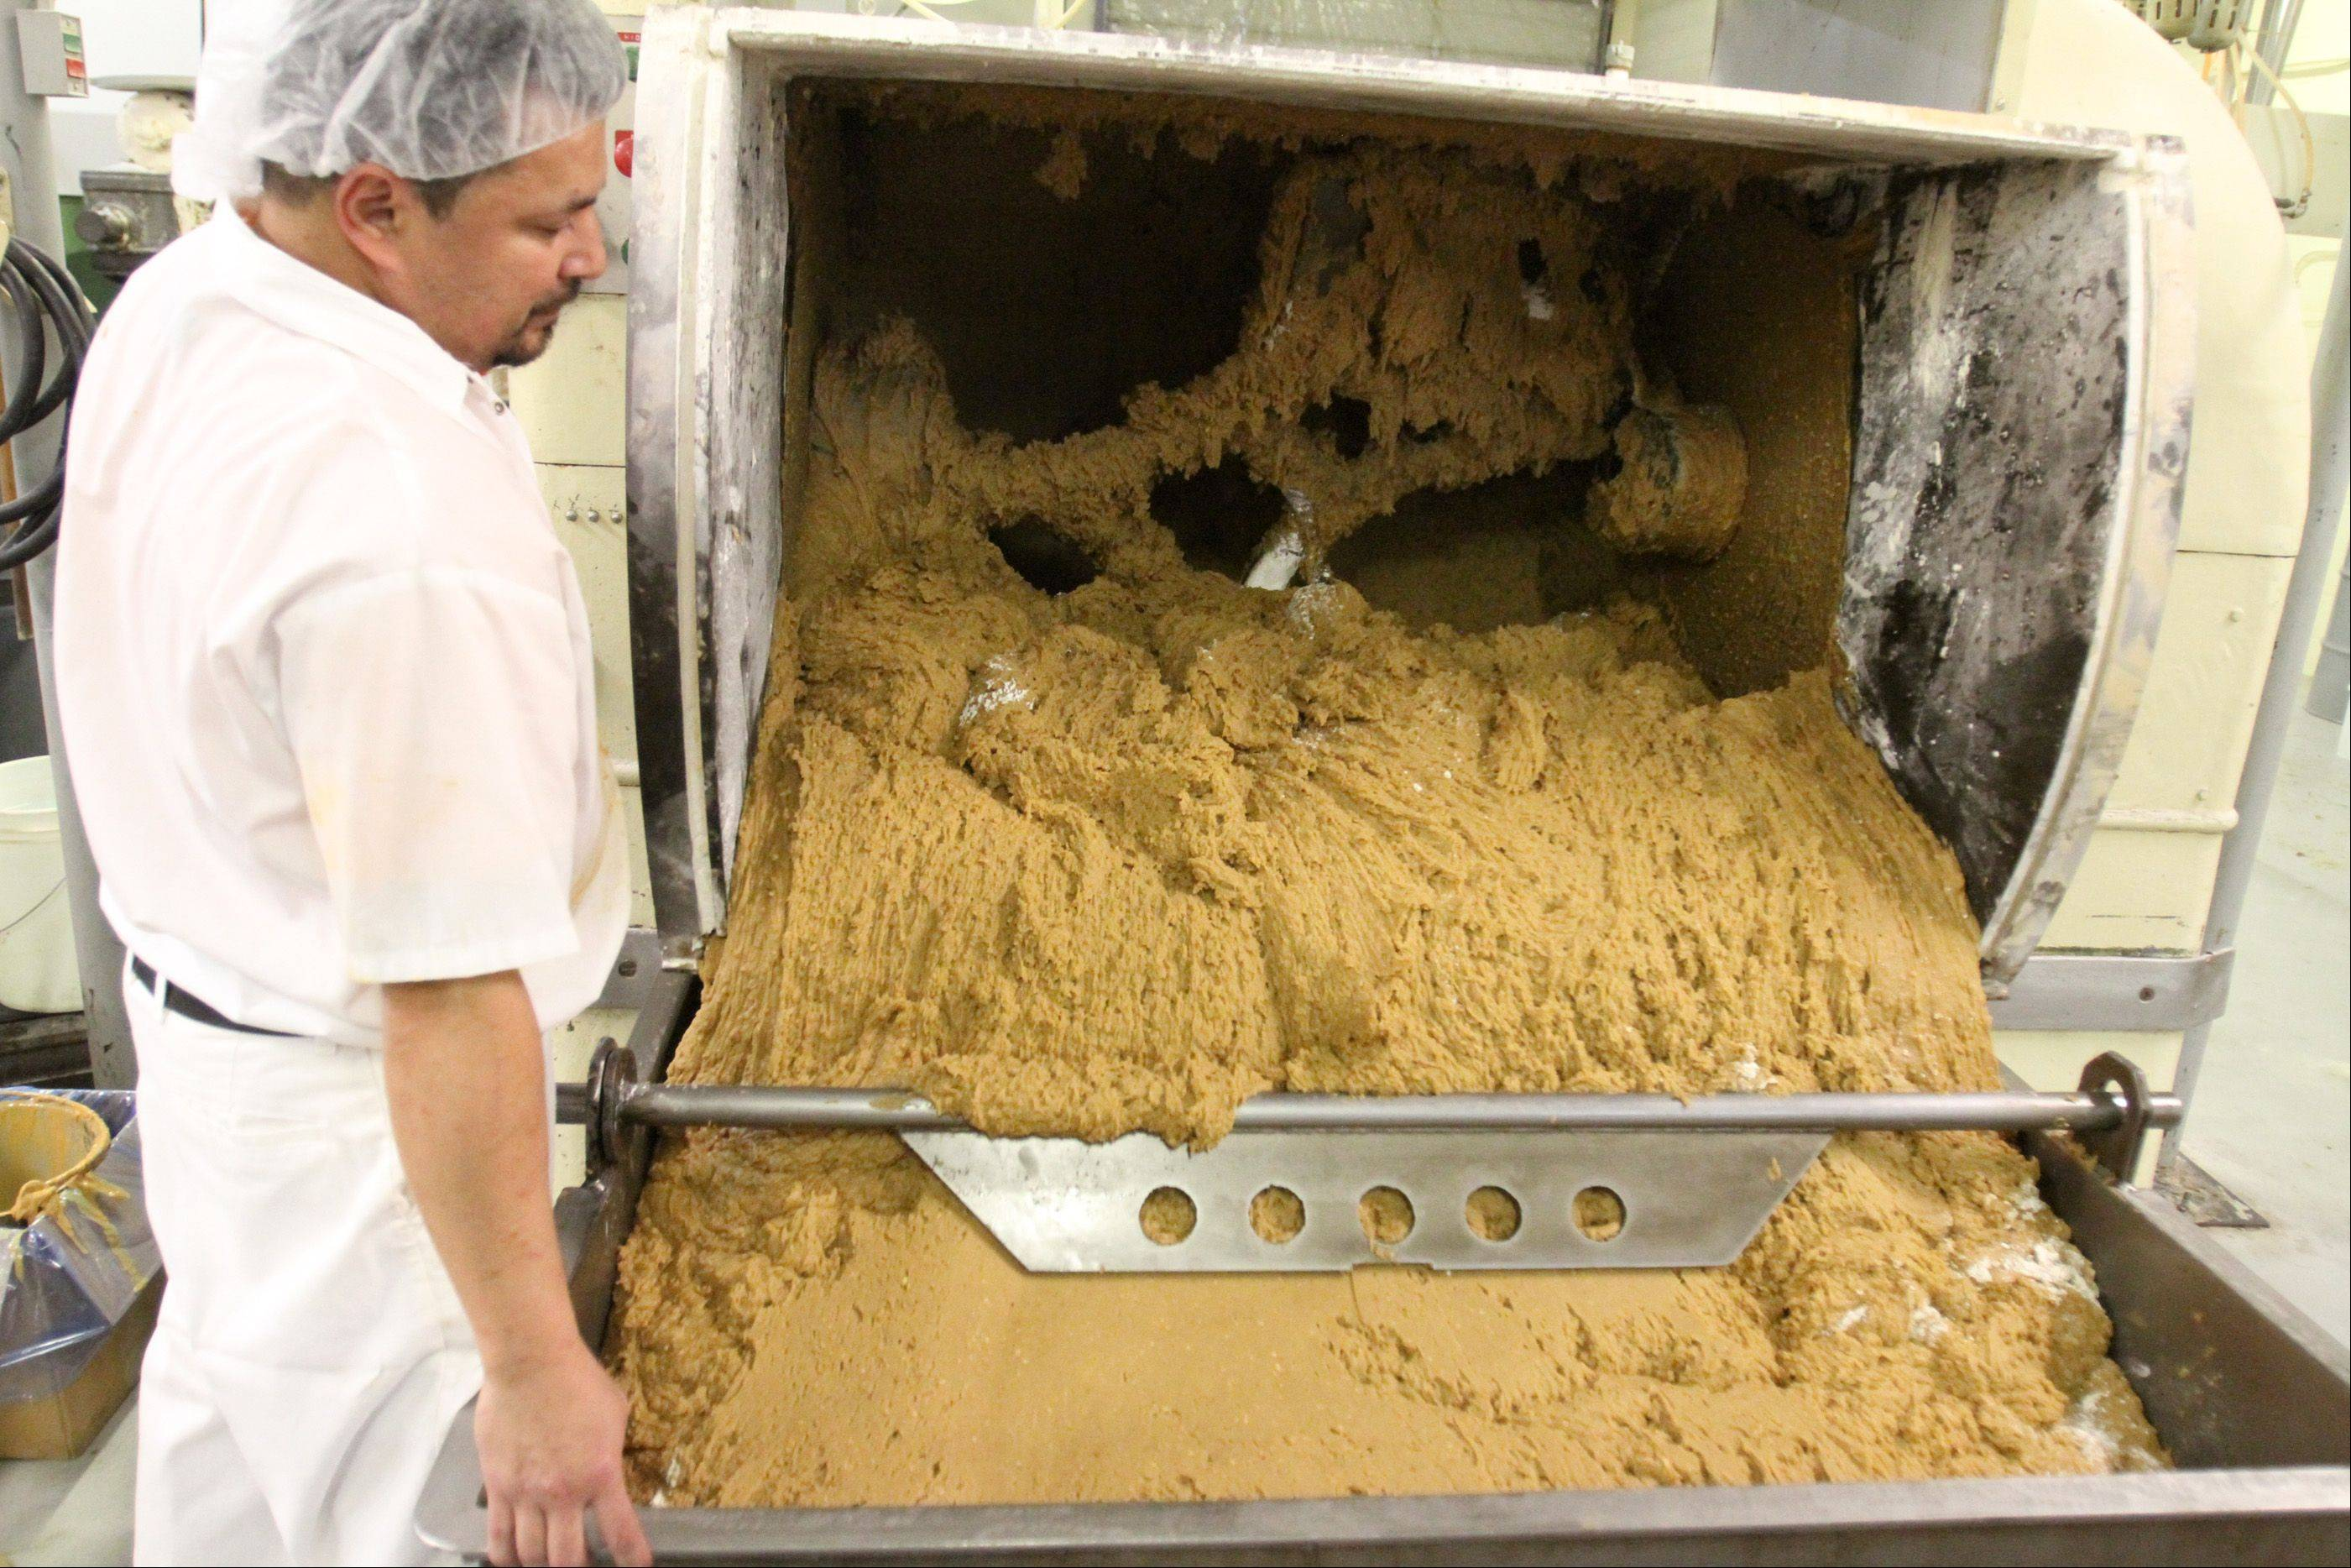 Gerardo Ramirez mixes cookie dough in one of two giant mixers at Matt's Cookies in Wheeling.